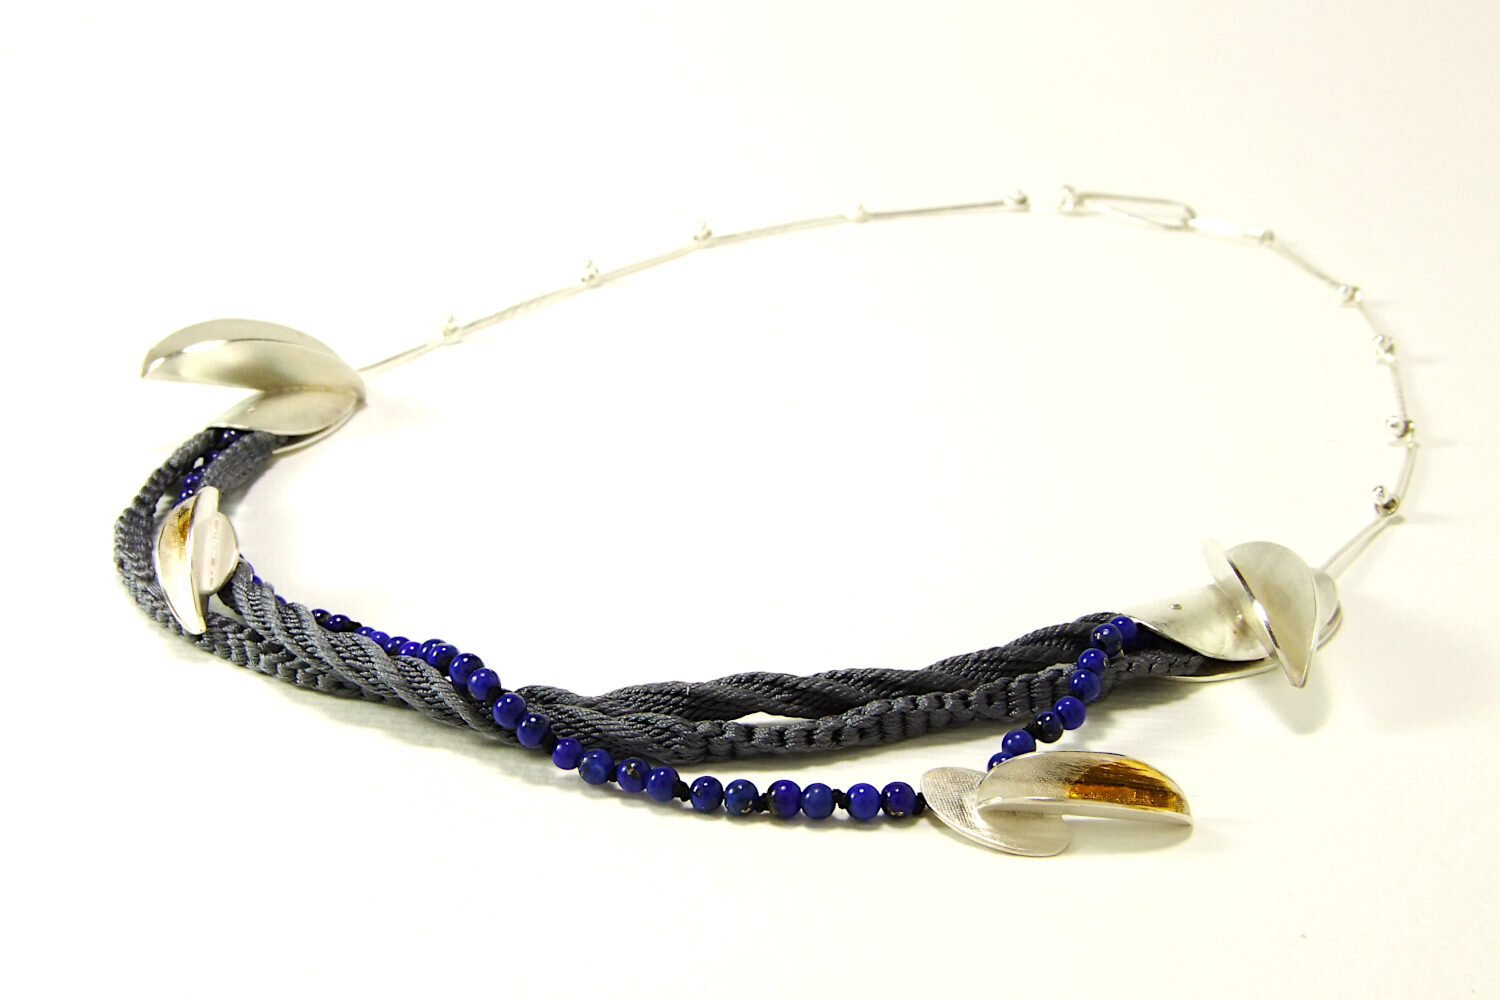 Detailed view of Lapis Lazuli beads and silver pendant with Keum-boo decoration.